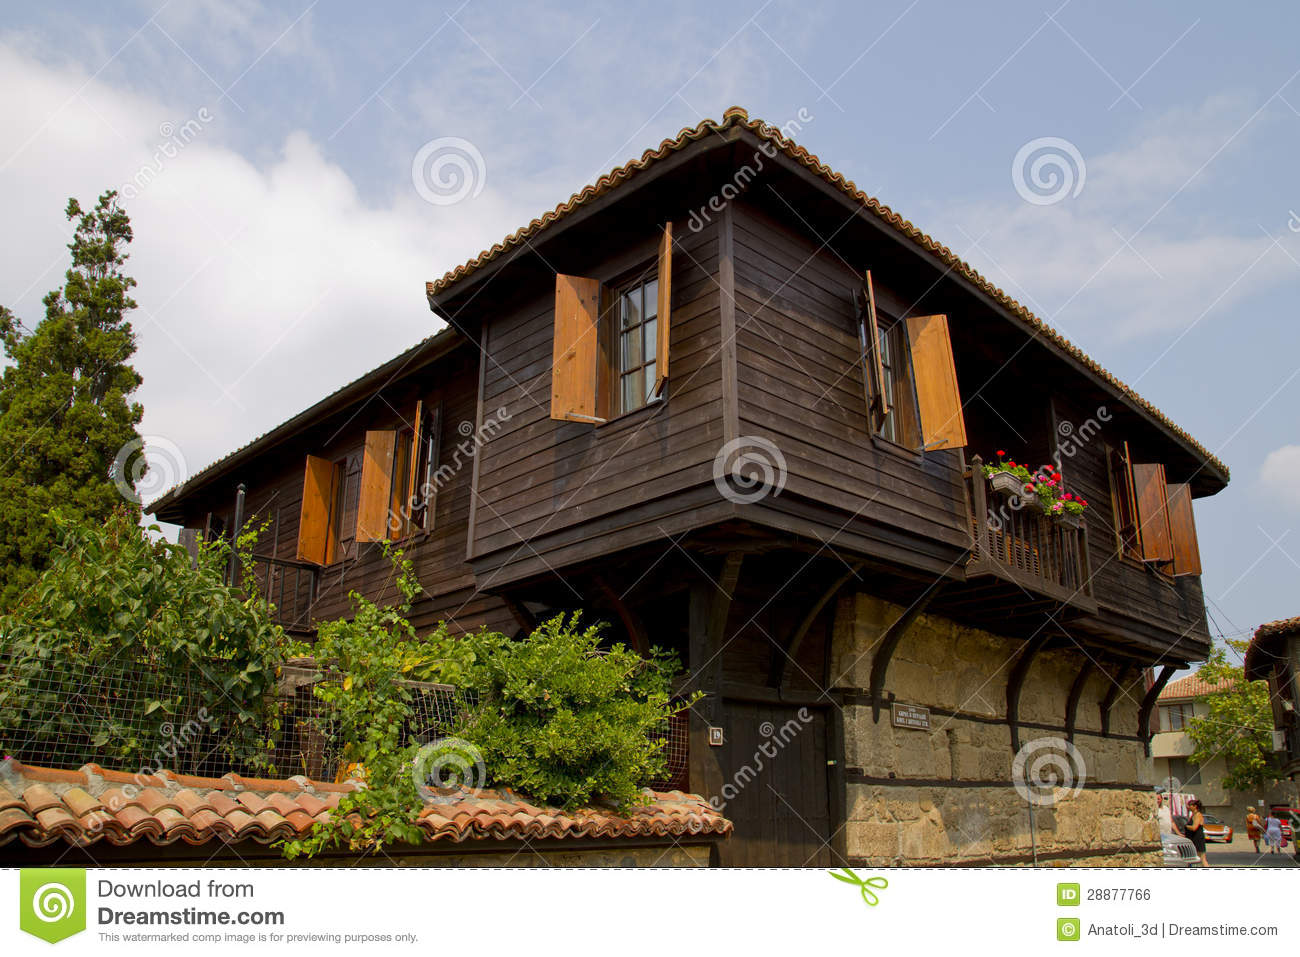 Old house in the city of Sozopol